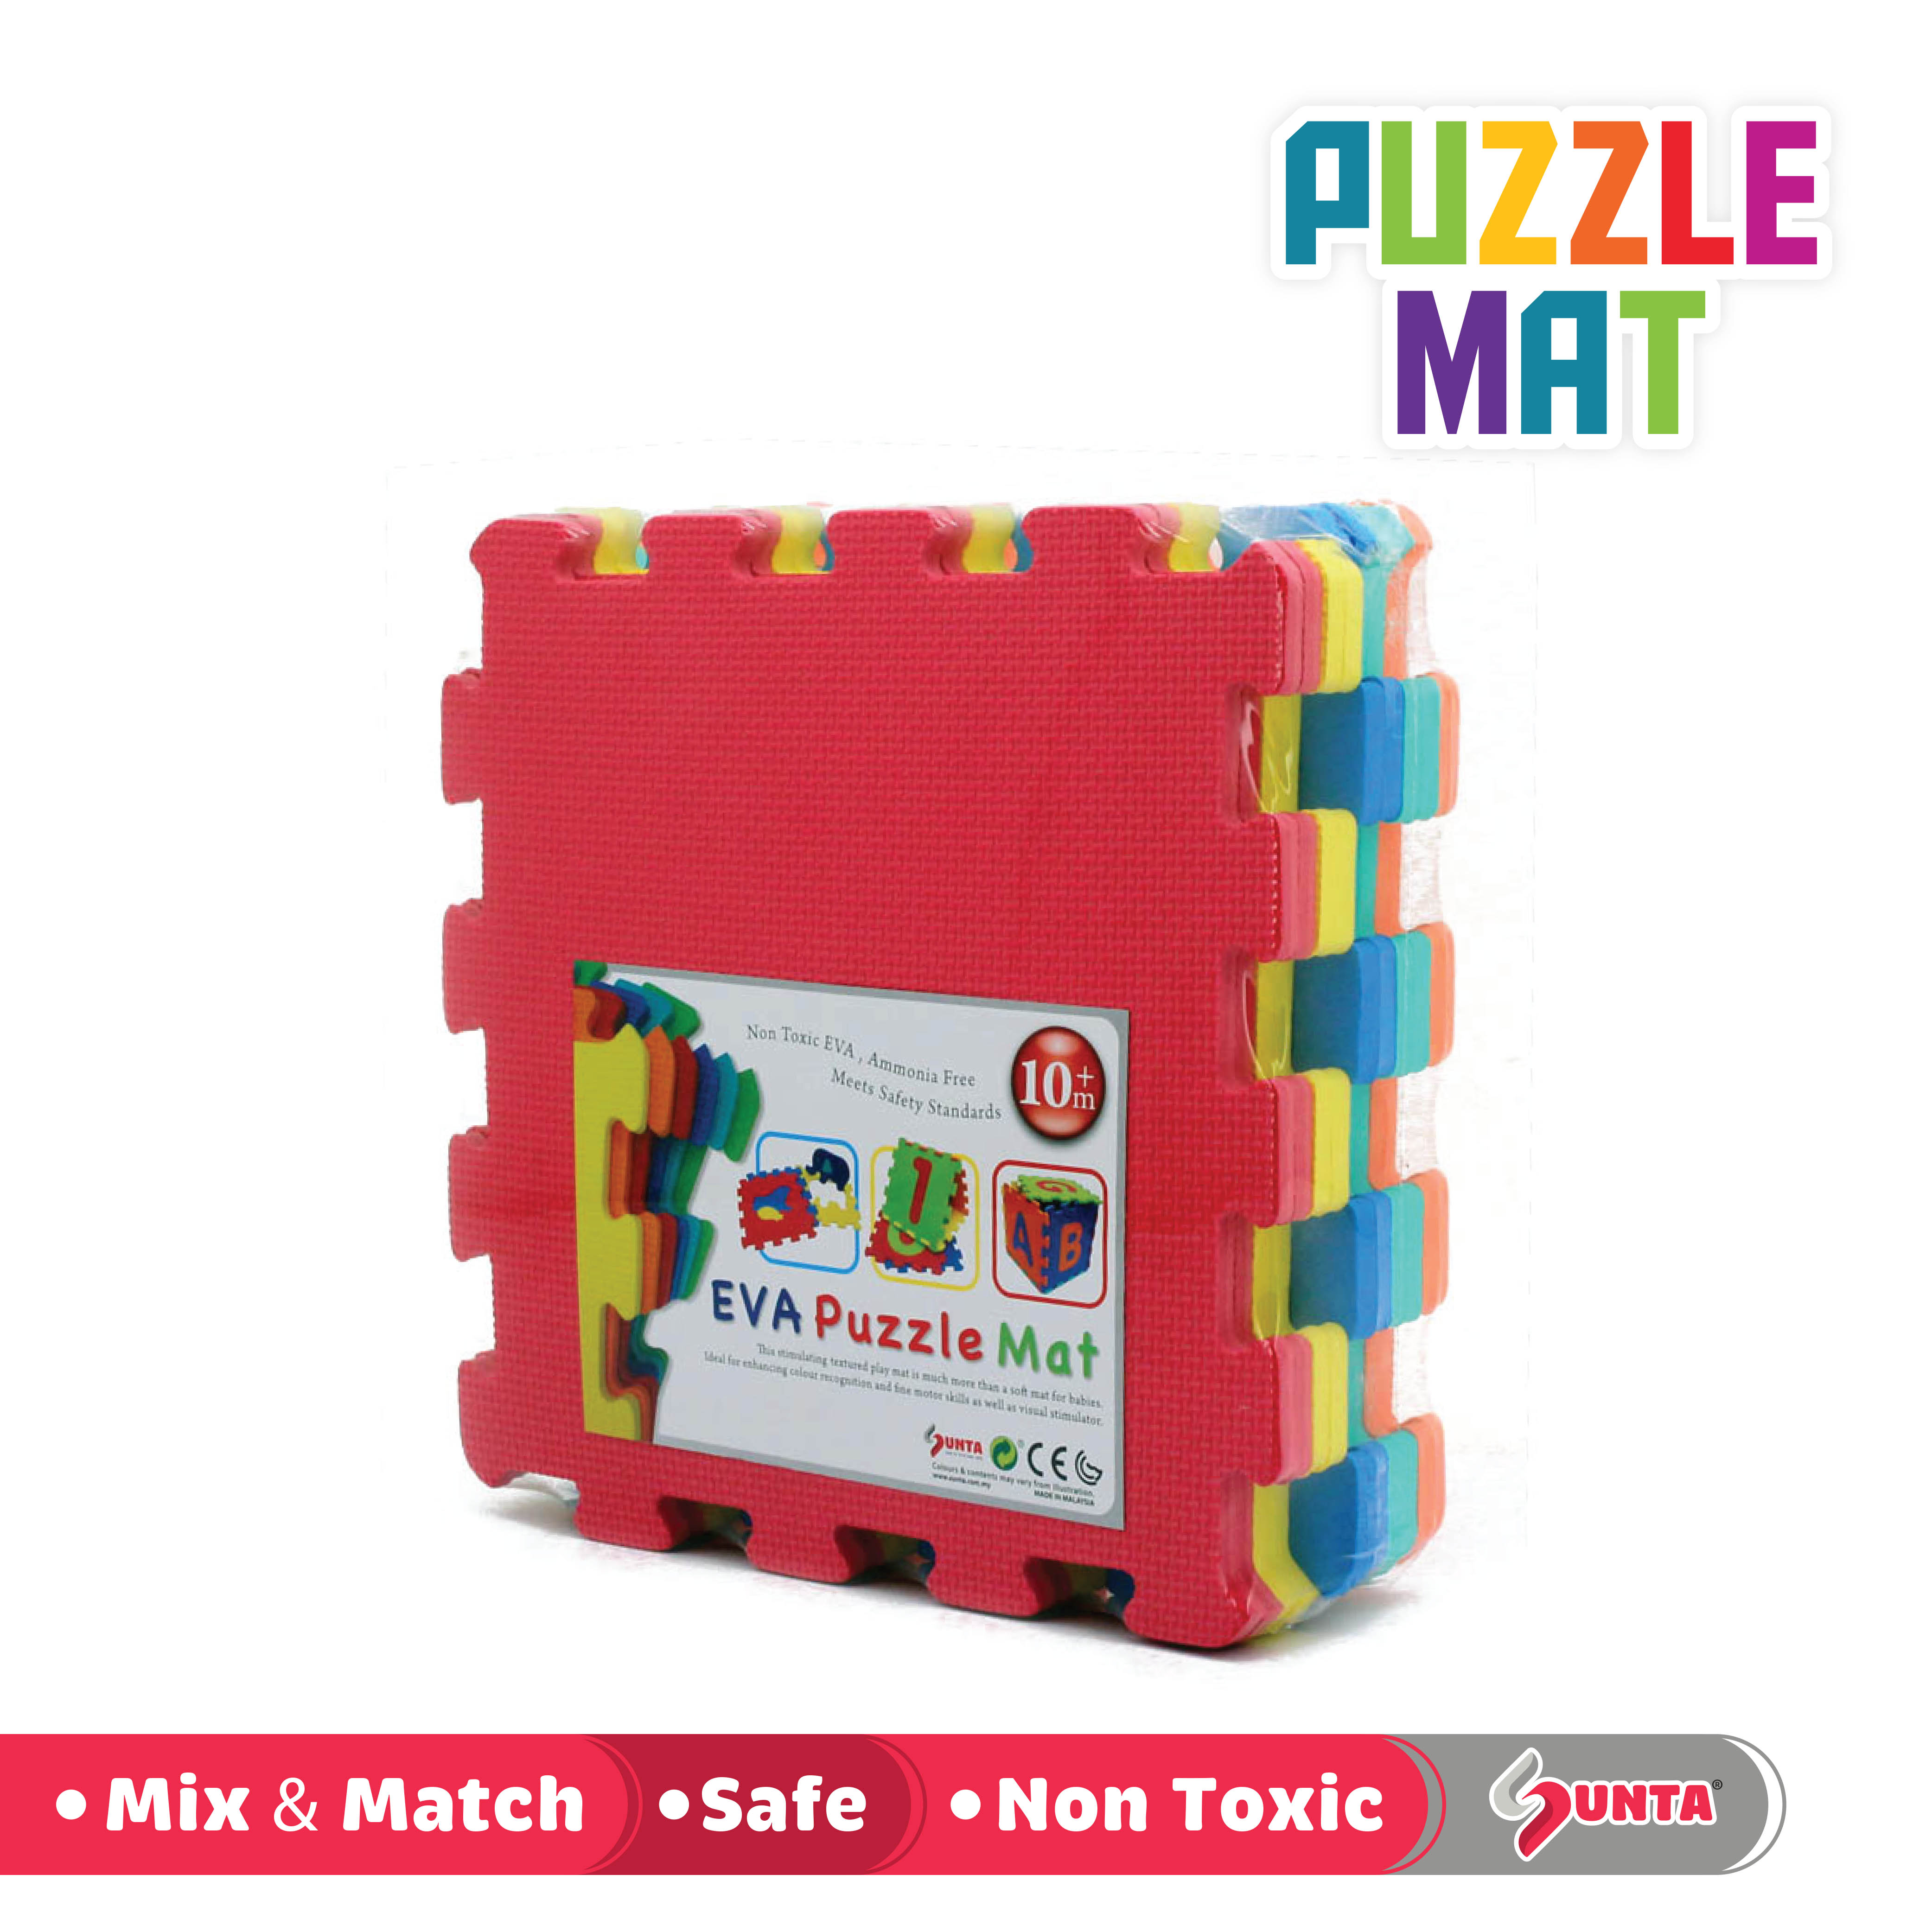 play floor puzzle animal mats piece commercial reviews pdp ca foam wayfair hey learning mat